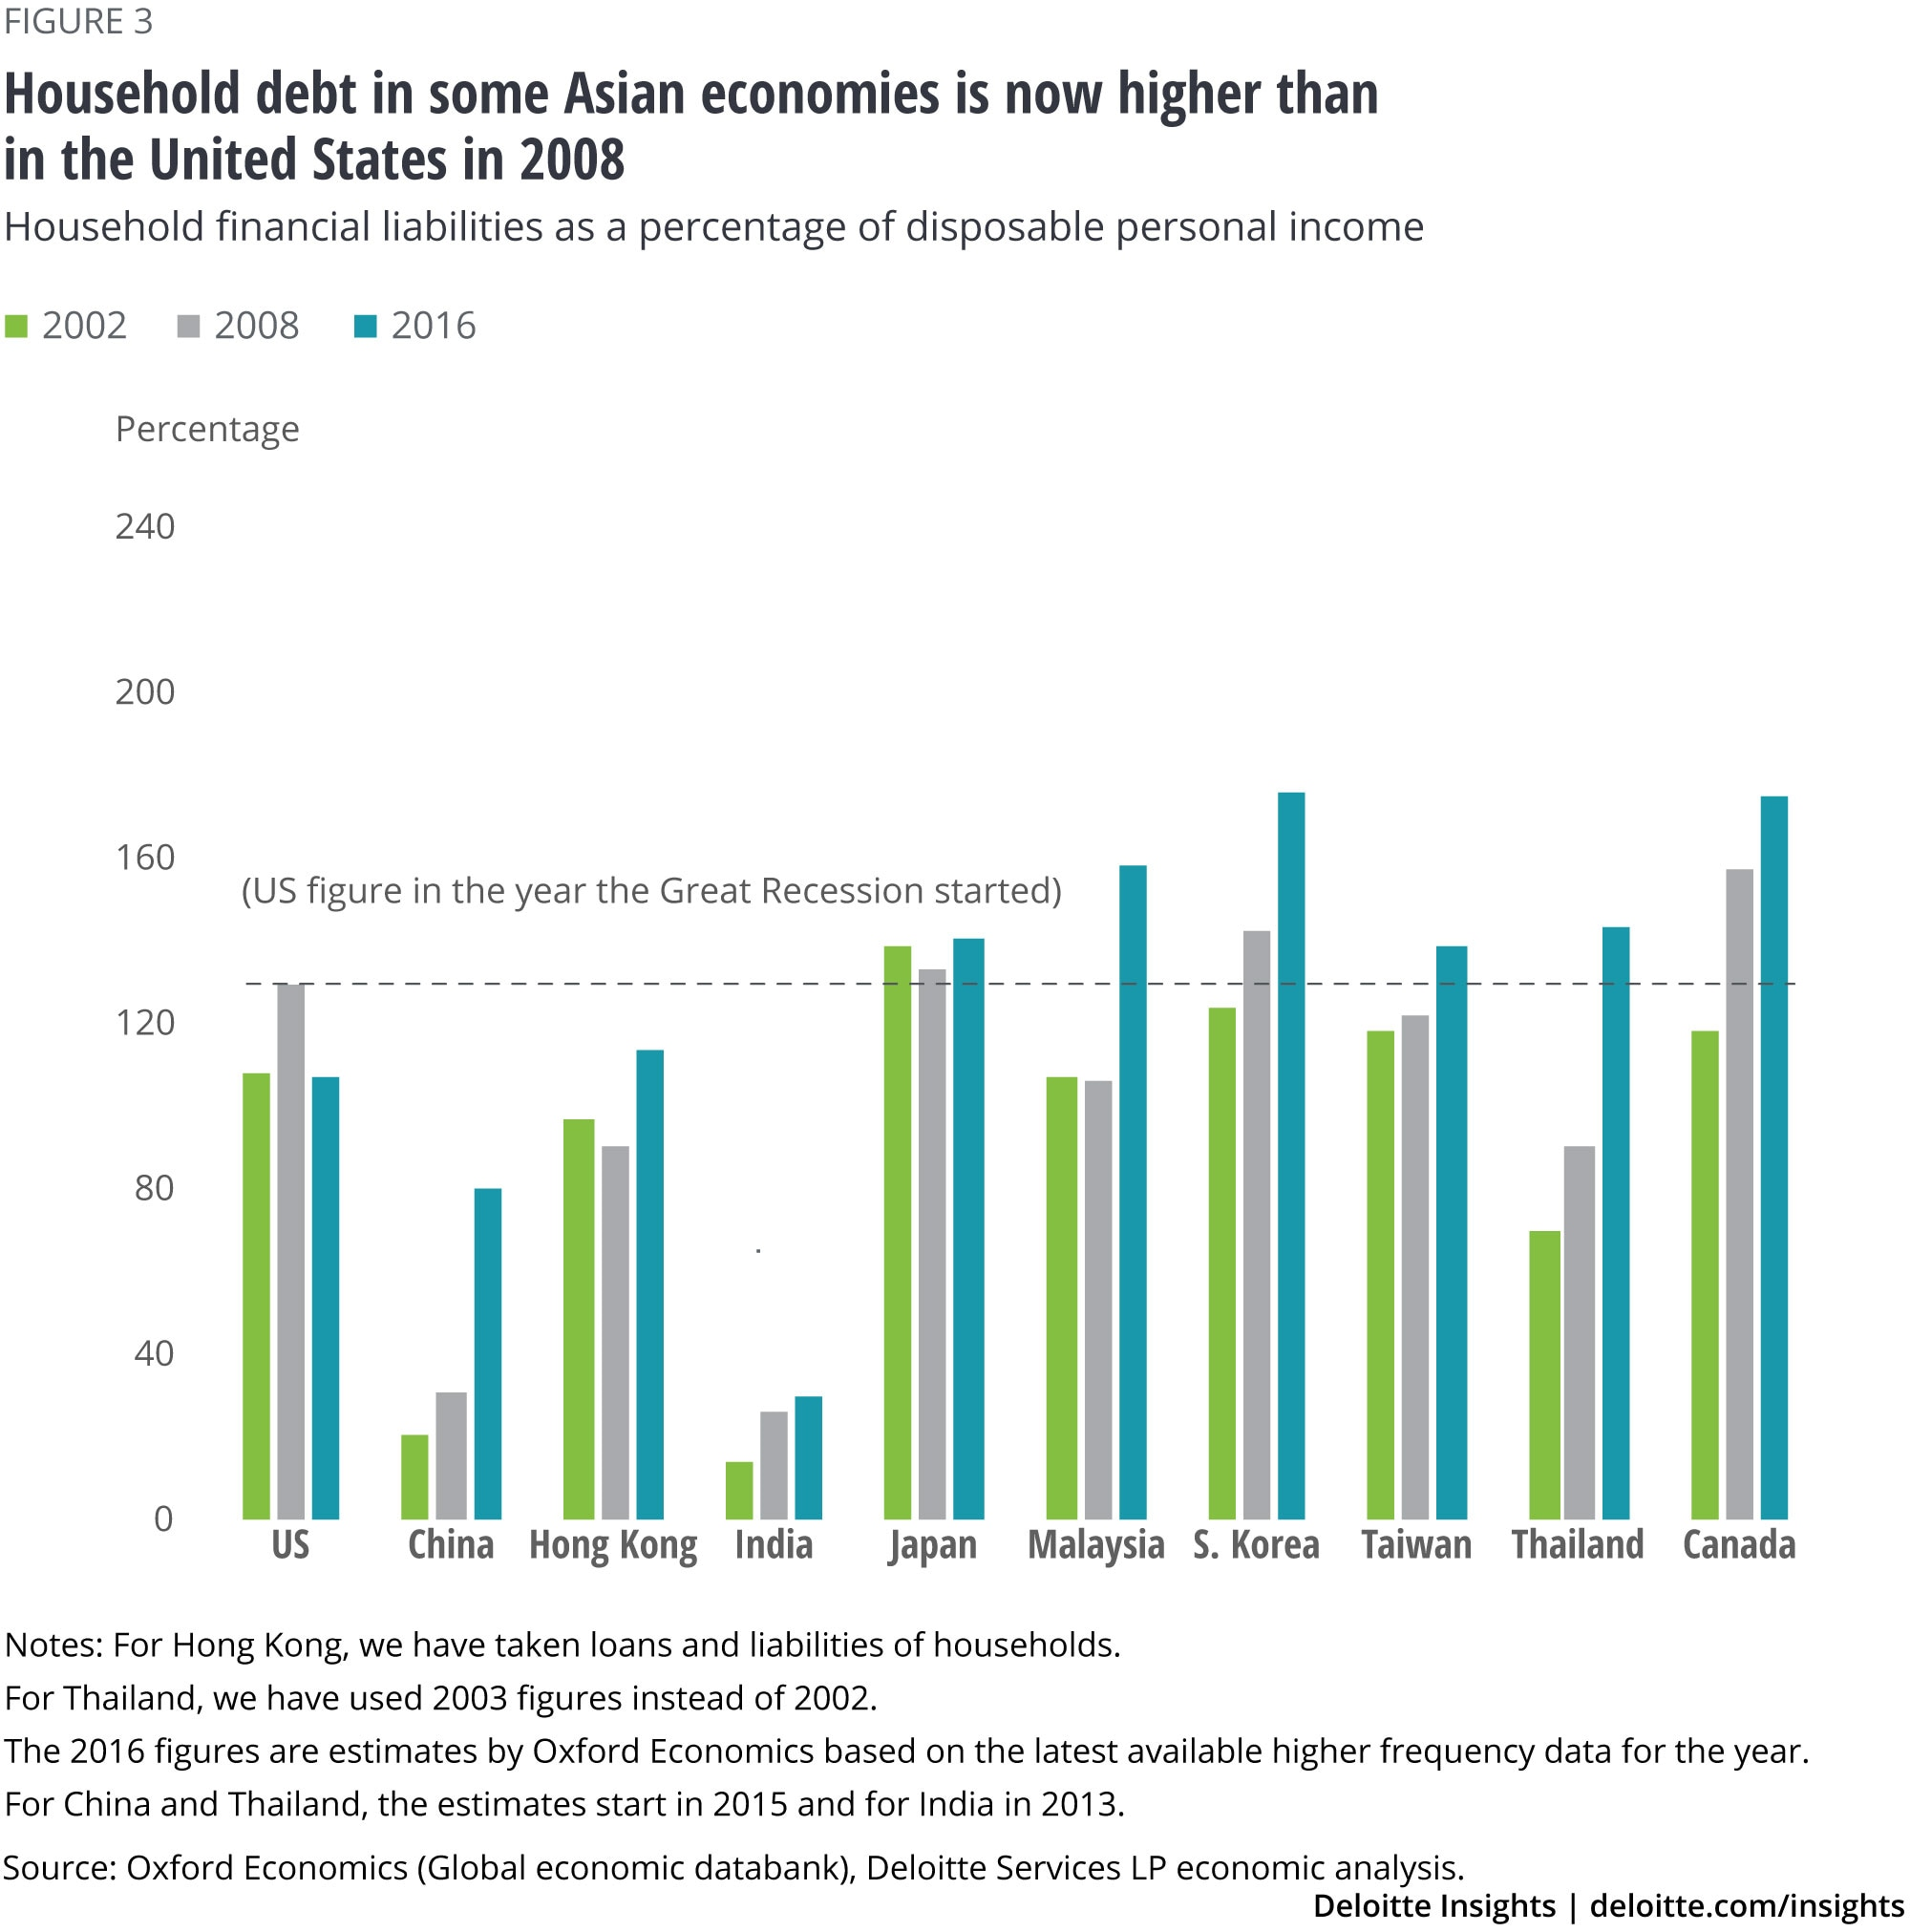 Household debt in some Asian economies is now higher than in the United States in 2008